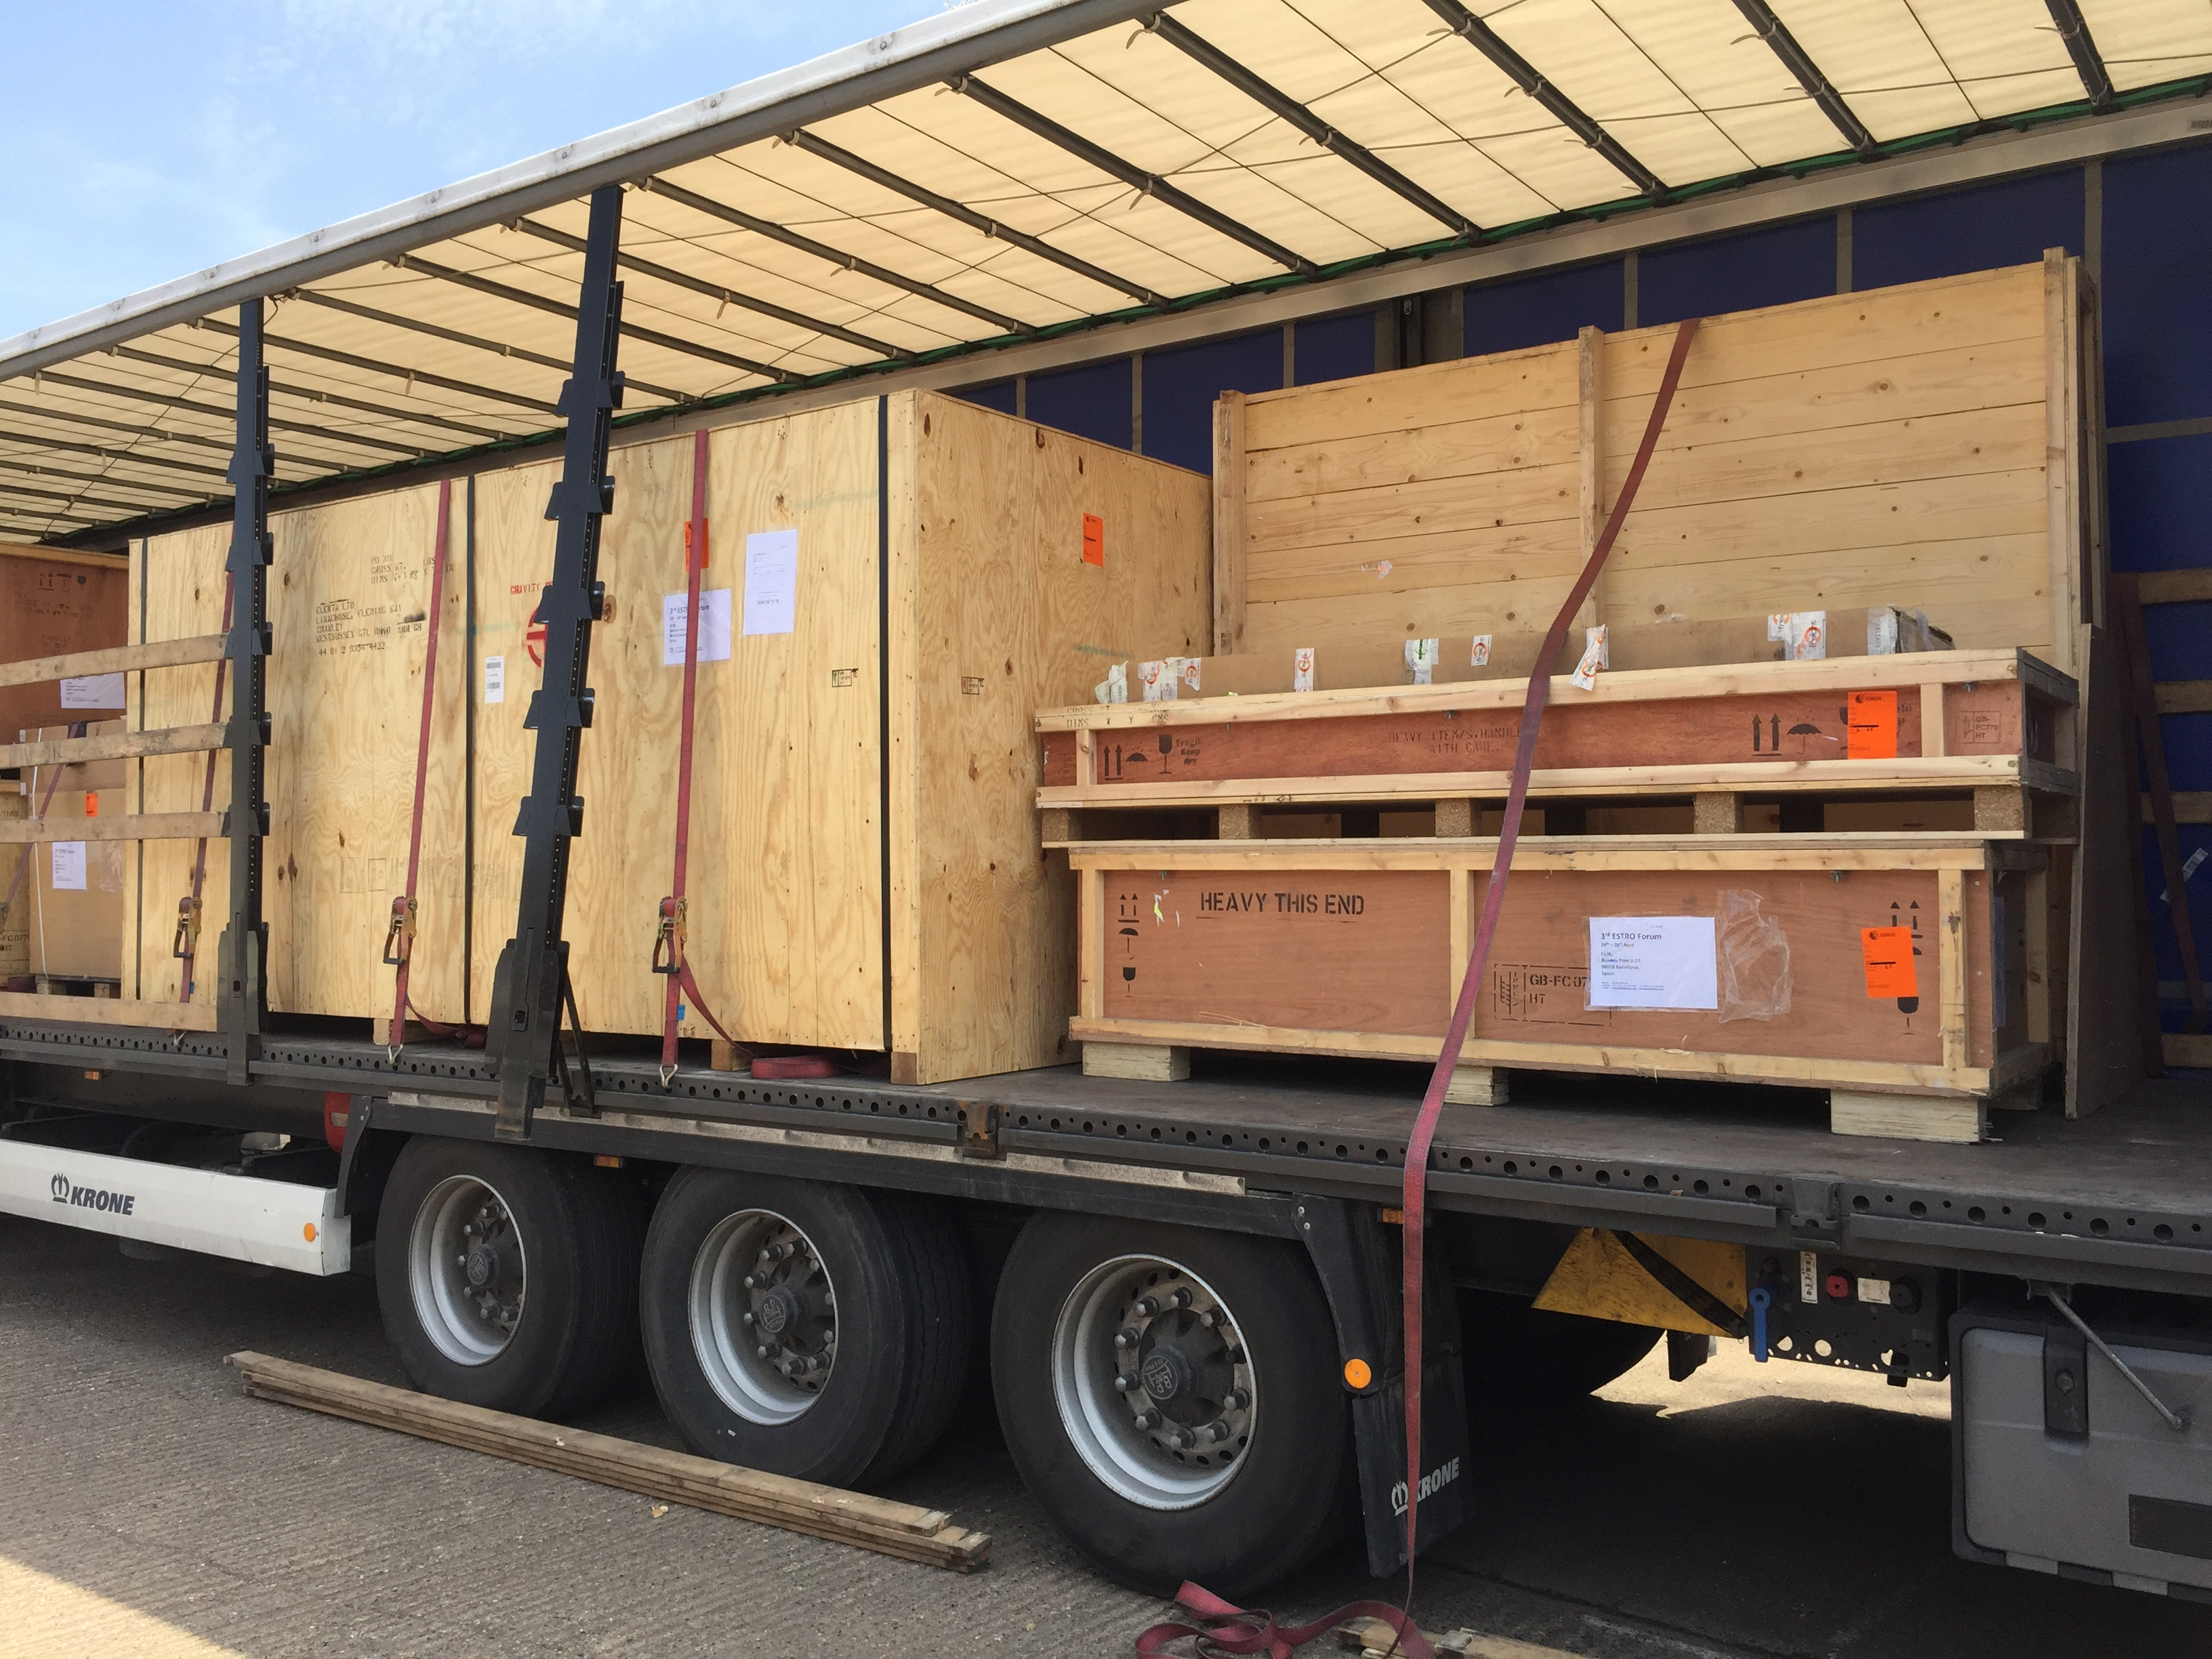 Exhibition Stand Transport : Exhibition freighting logistics event transport services ebiss uk